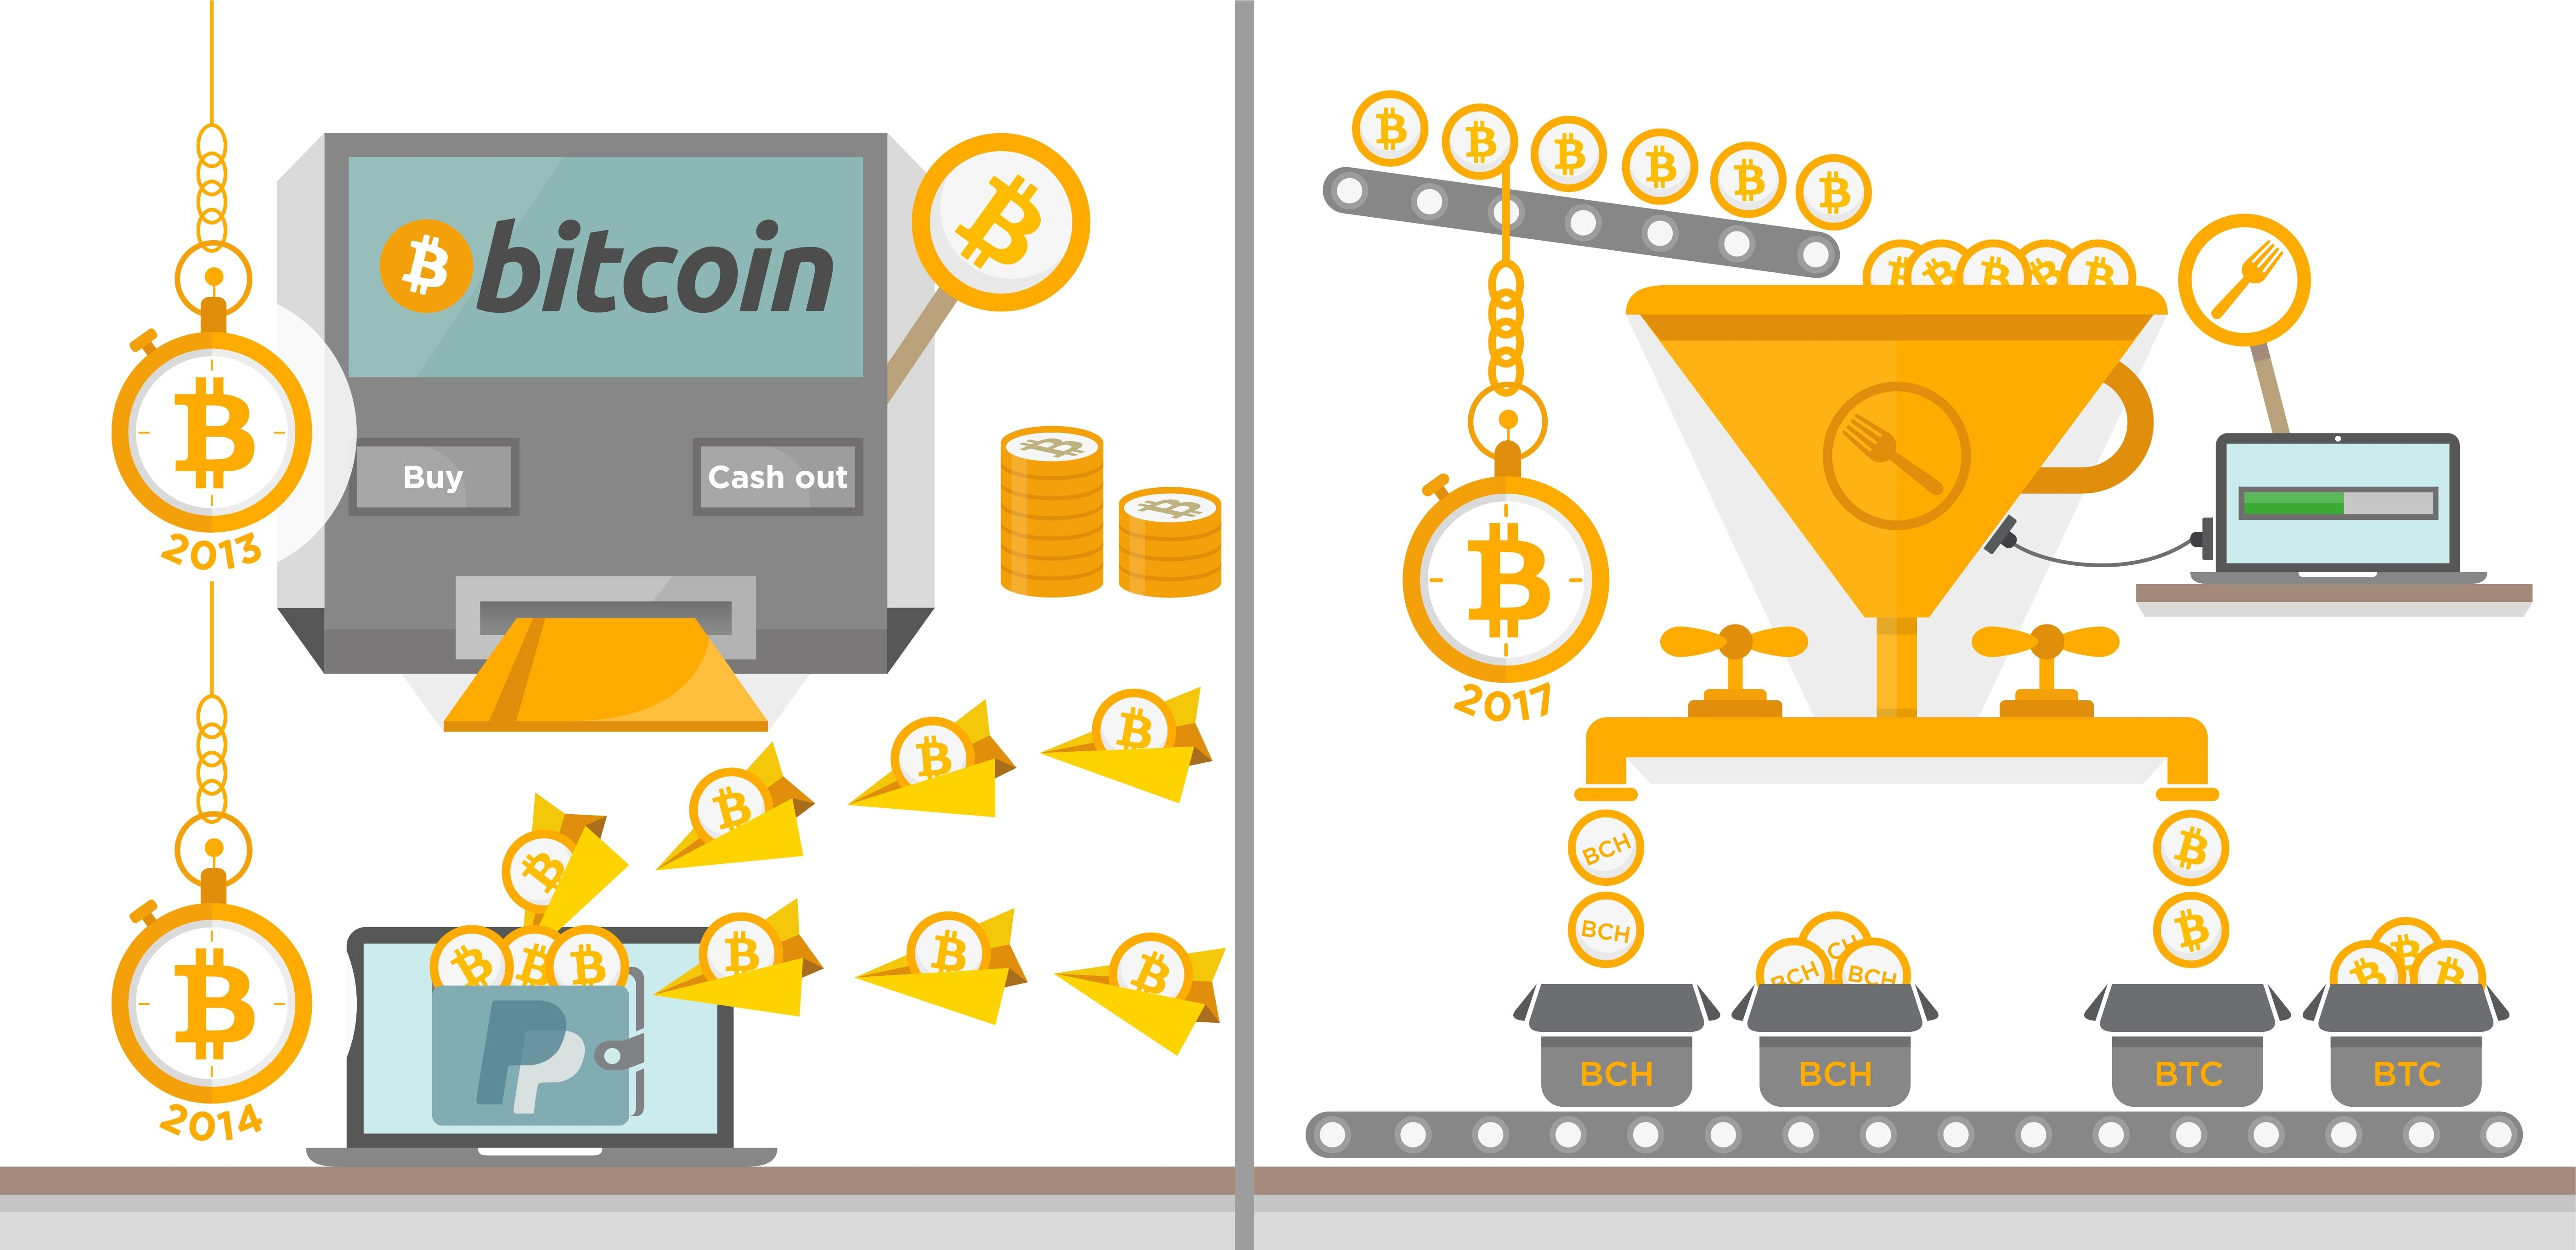 An infographic banner Bitcoin illustrations showing its progress over the years